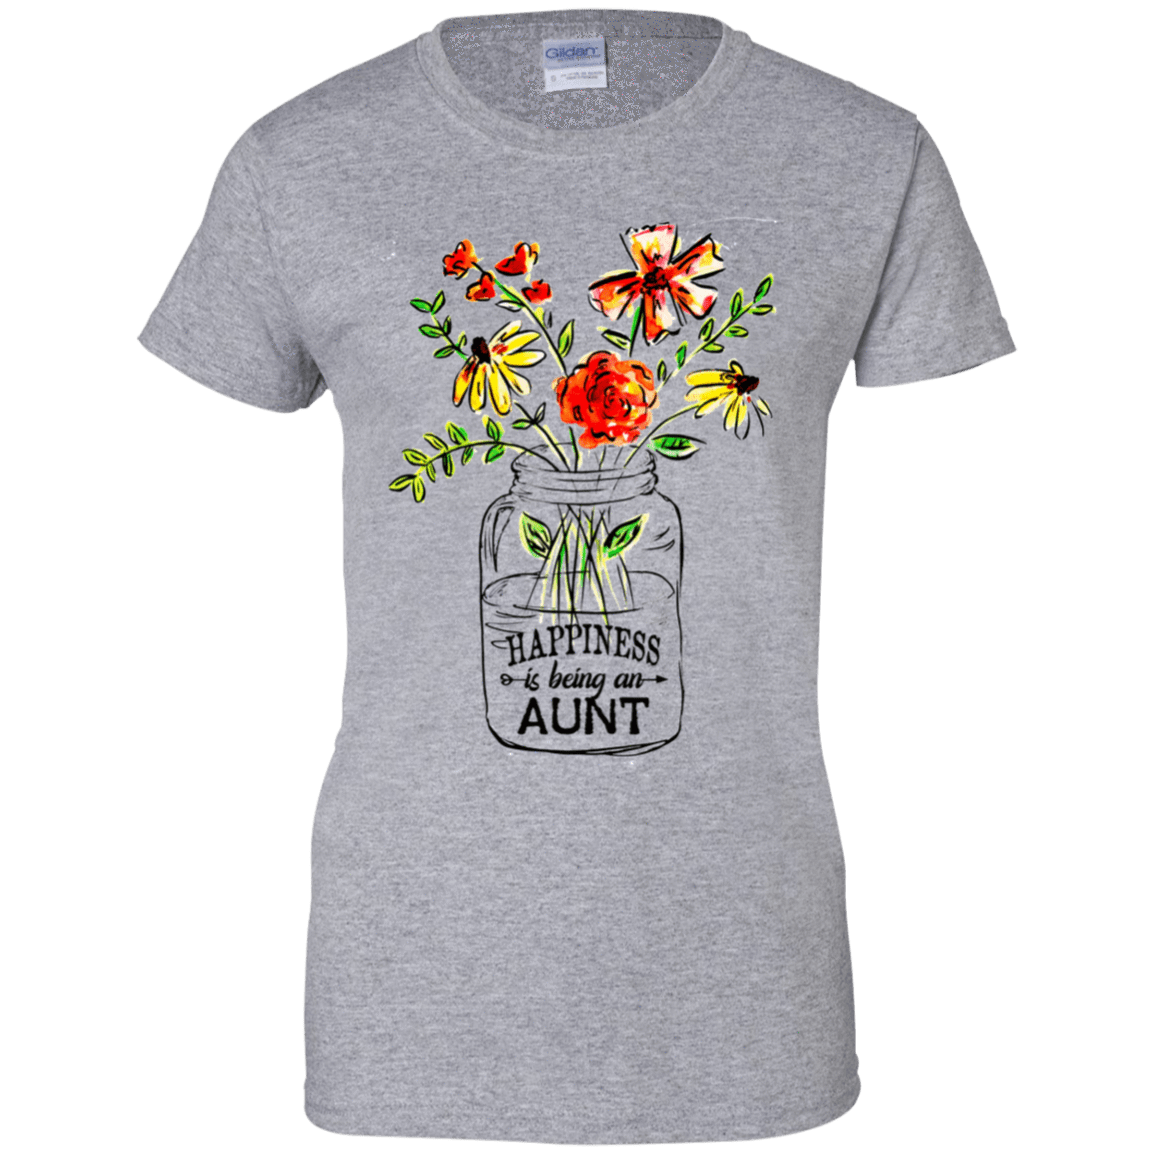 Happiness Is Being An Aunt Flower 939-9265-74371533-44821 - Tee Ript